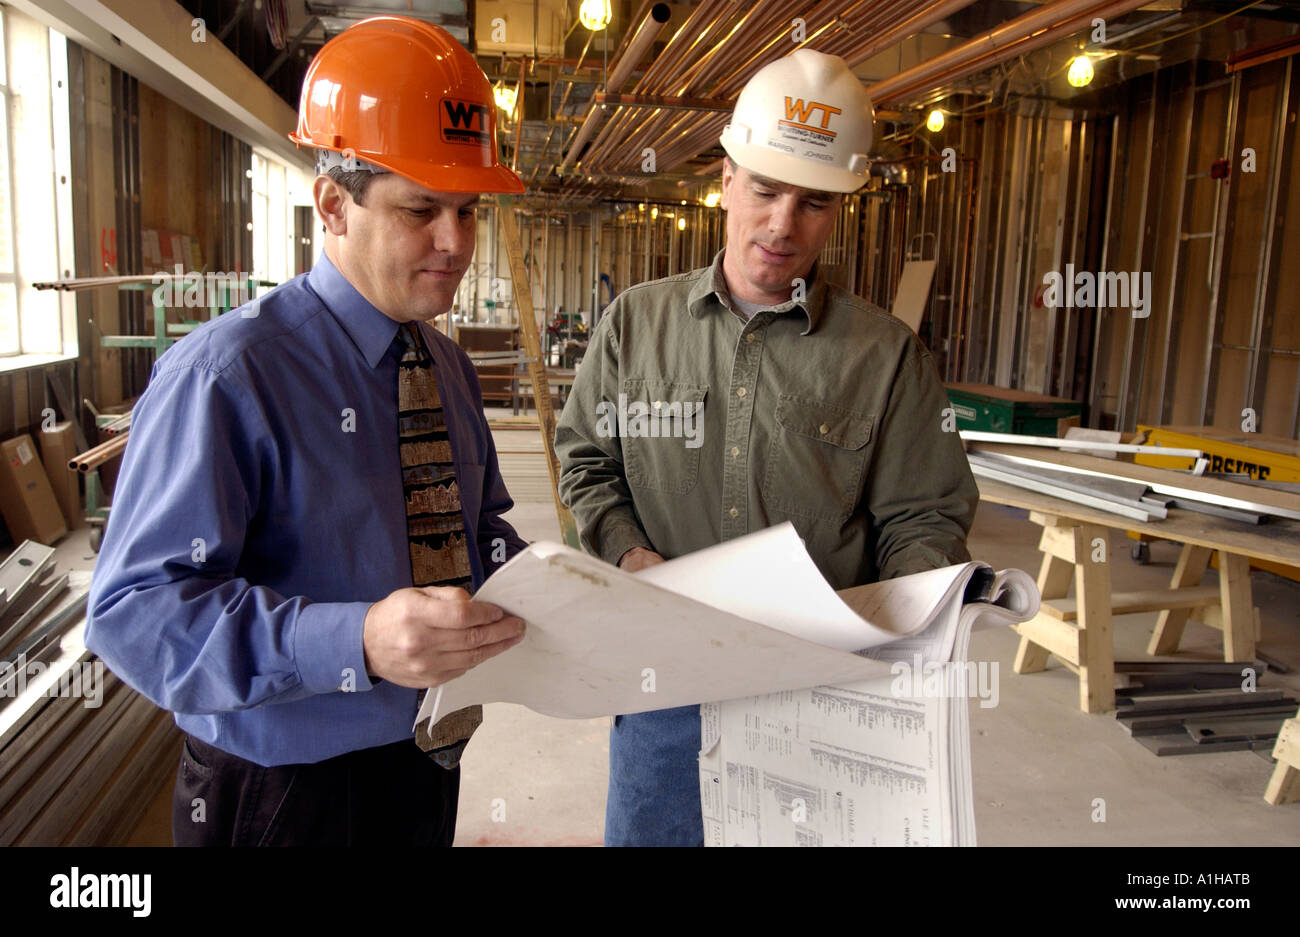 Architect and Construction foreman look over schematic drawings blueprints at construction site - Stock Image